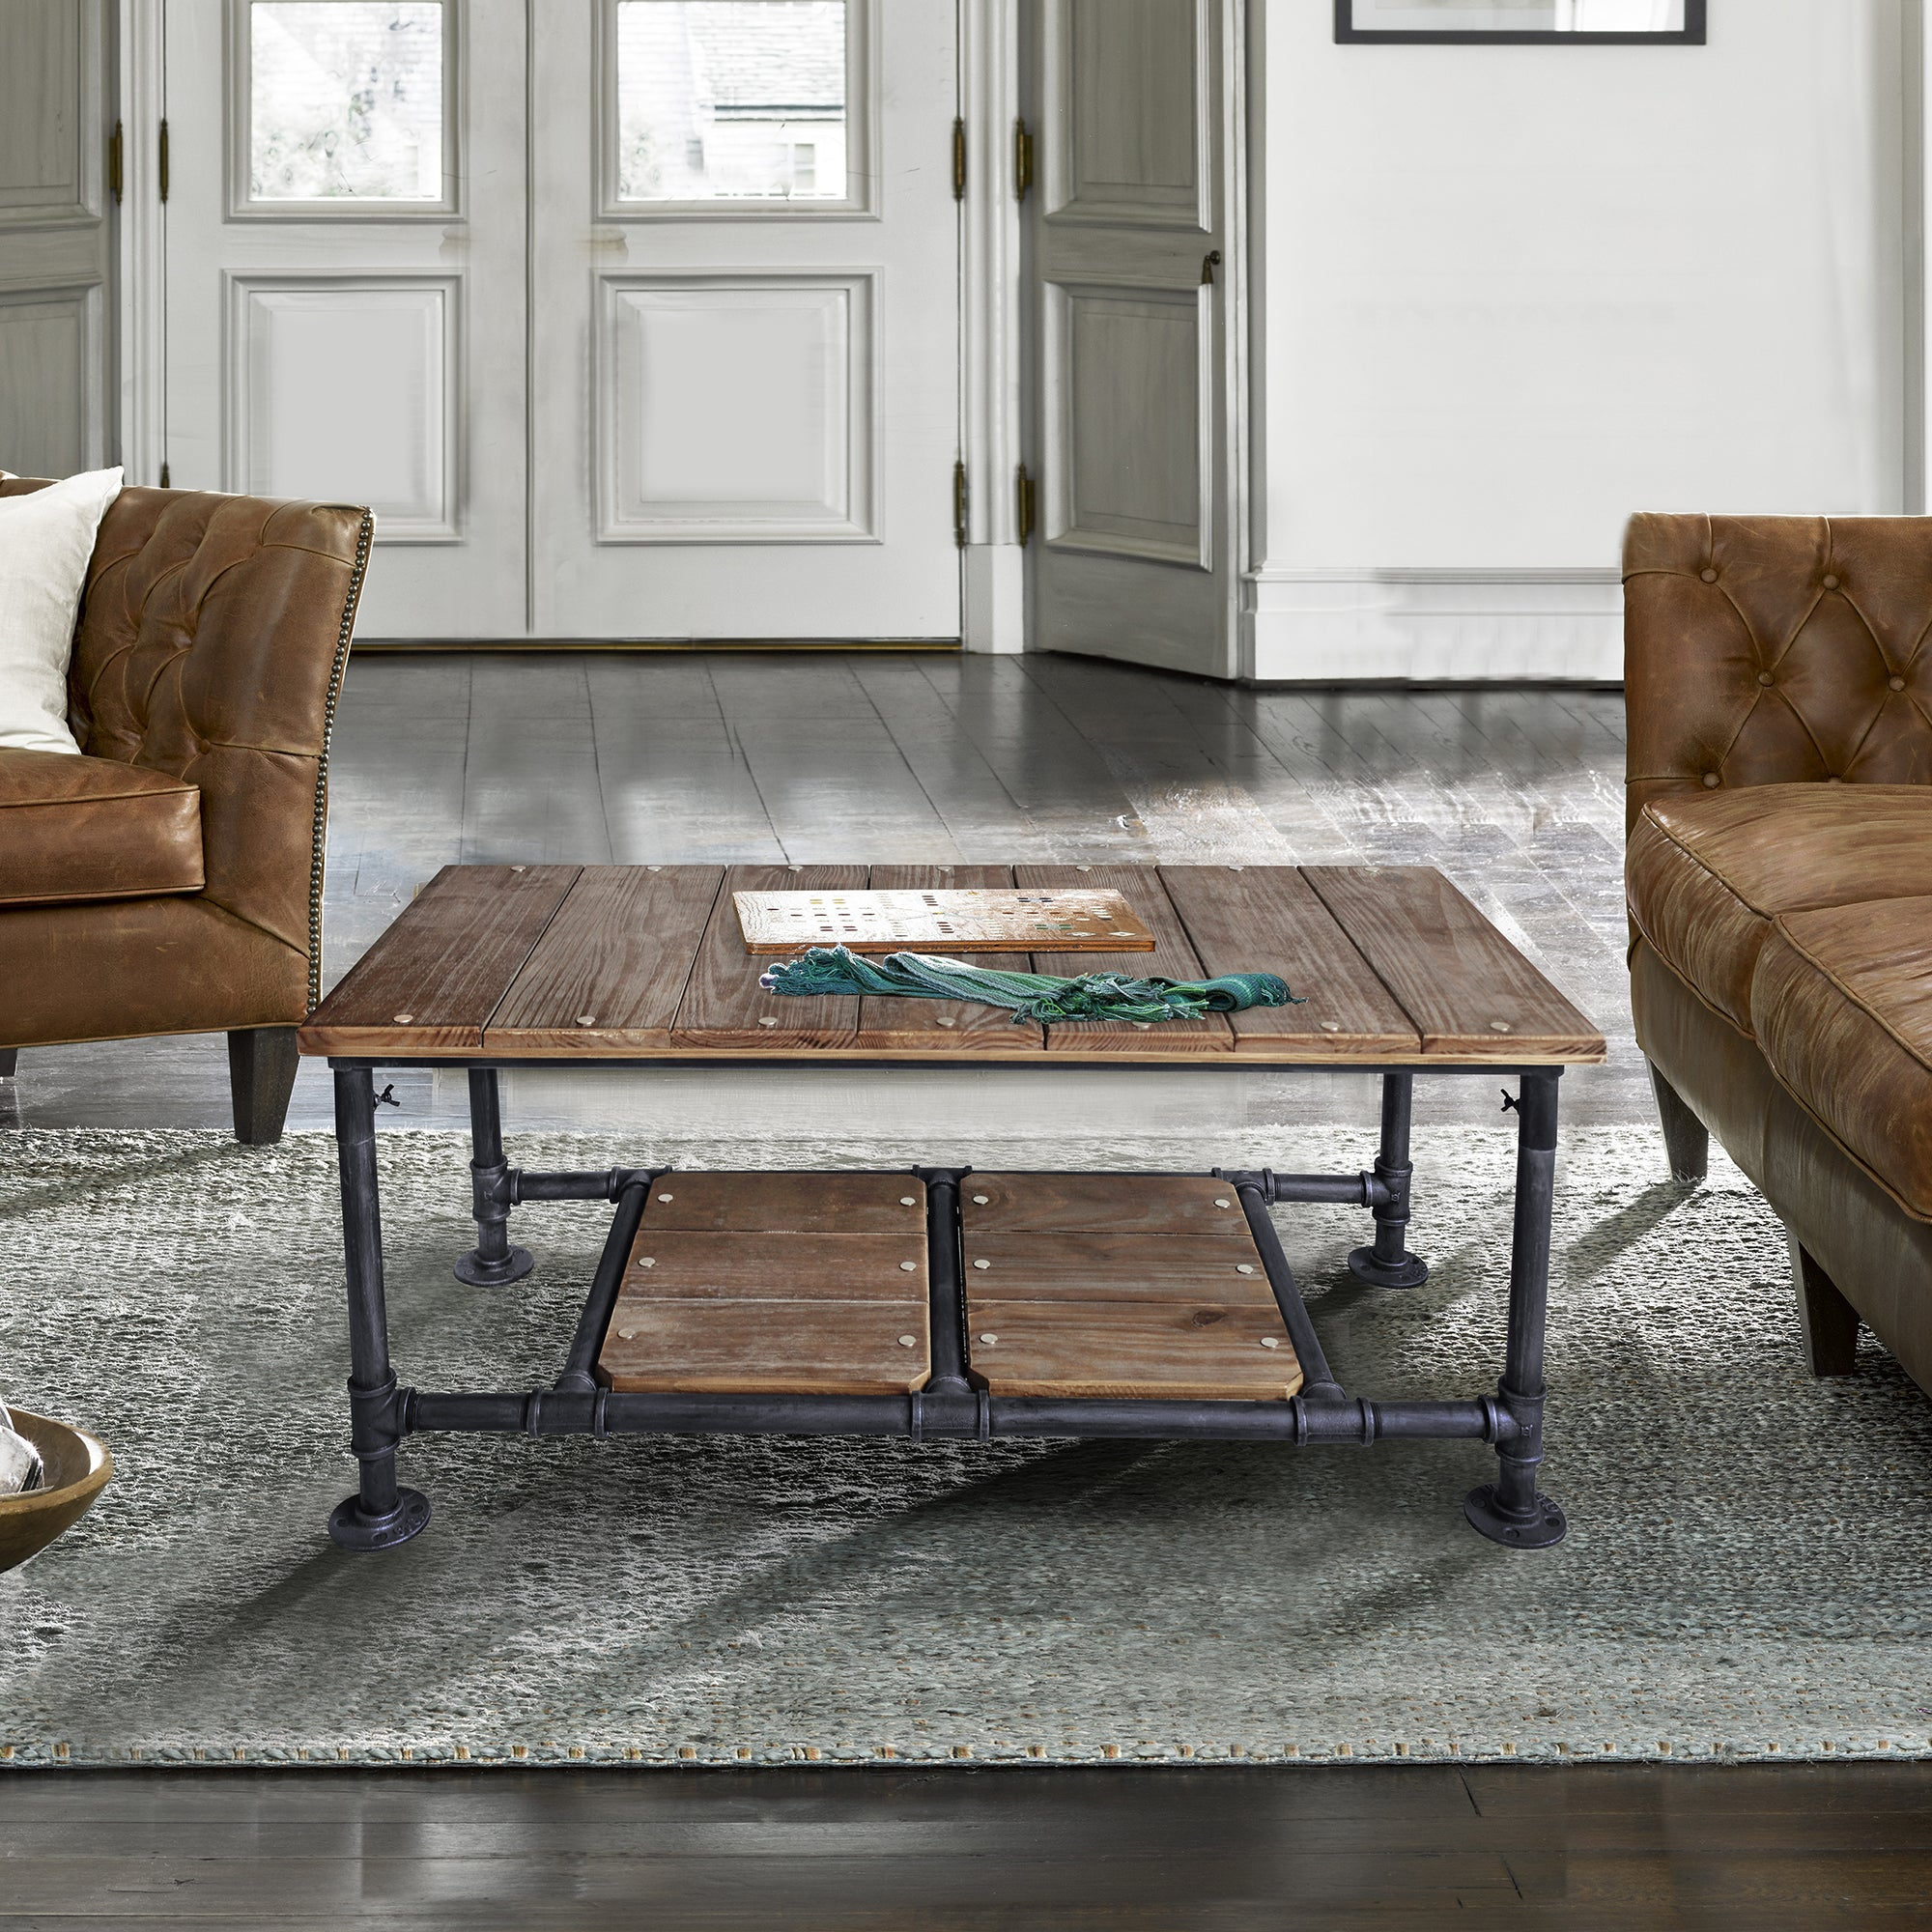 Here is a comprehensive list of types of coffee tables: